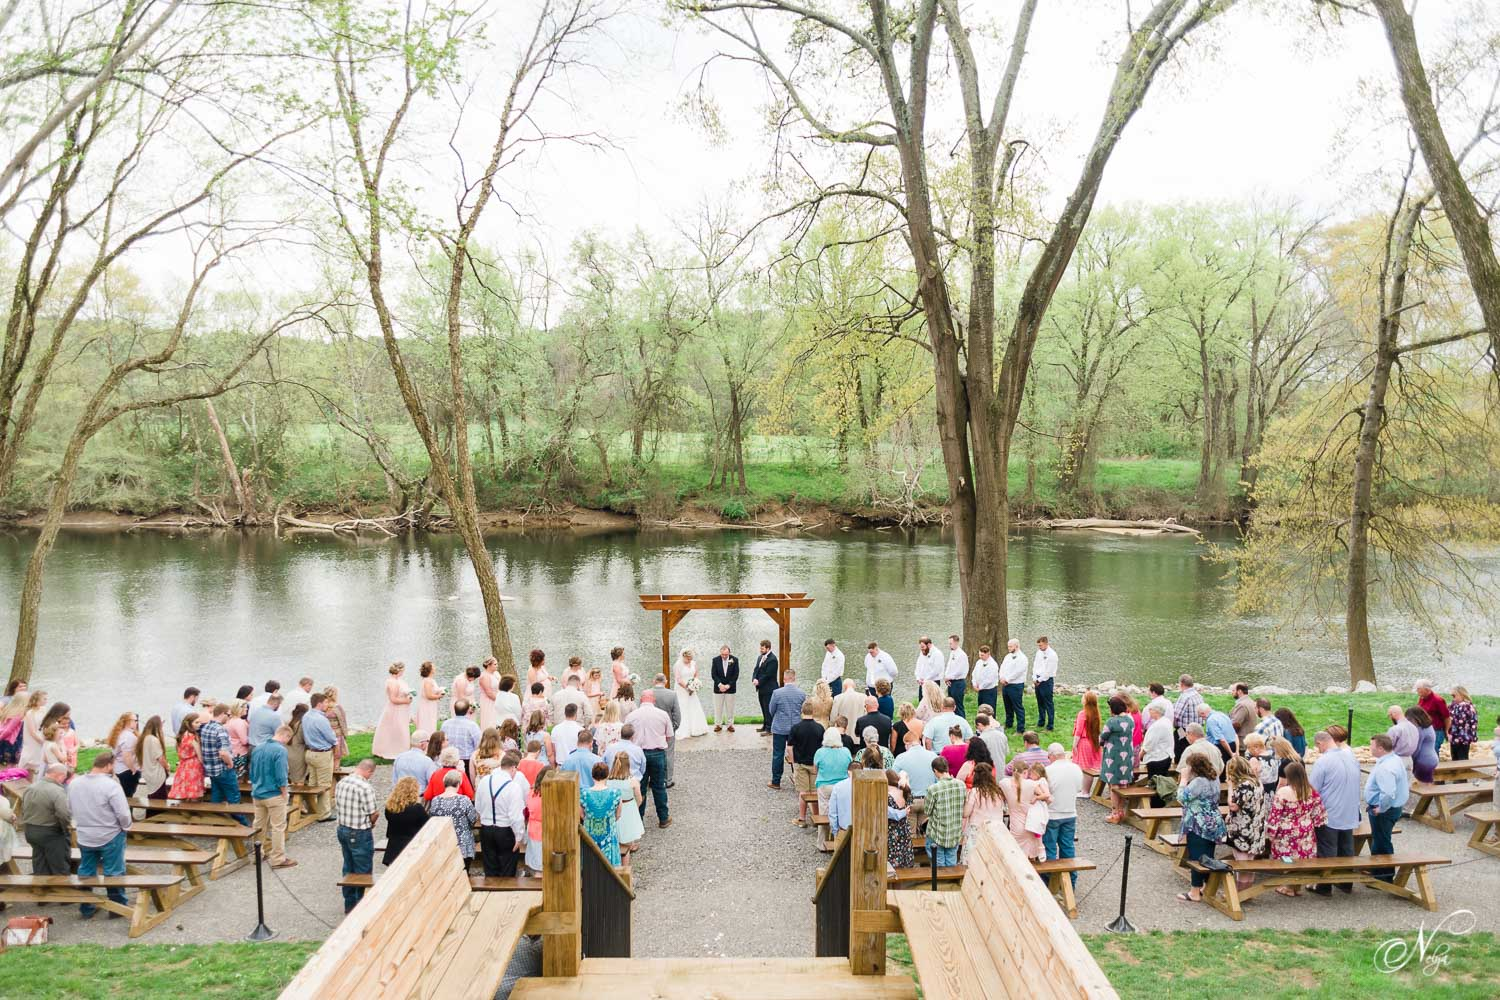 riverside wedding ceremony in south east tennessee near North georgia